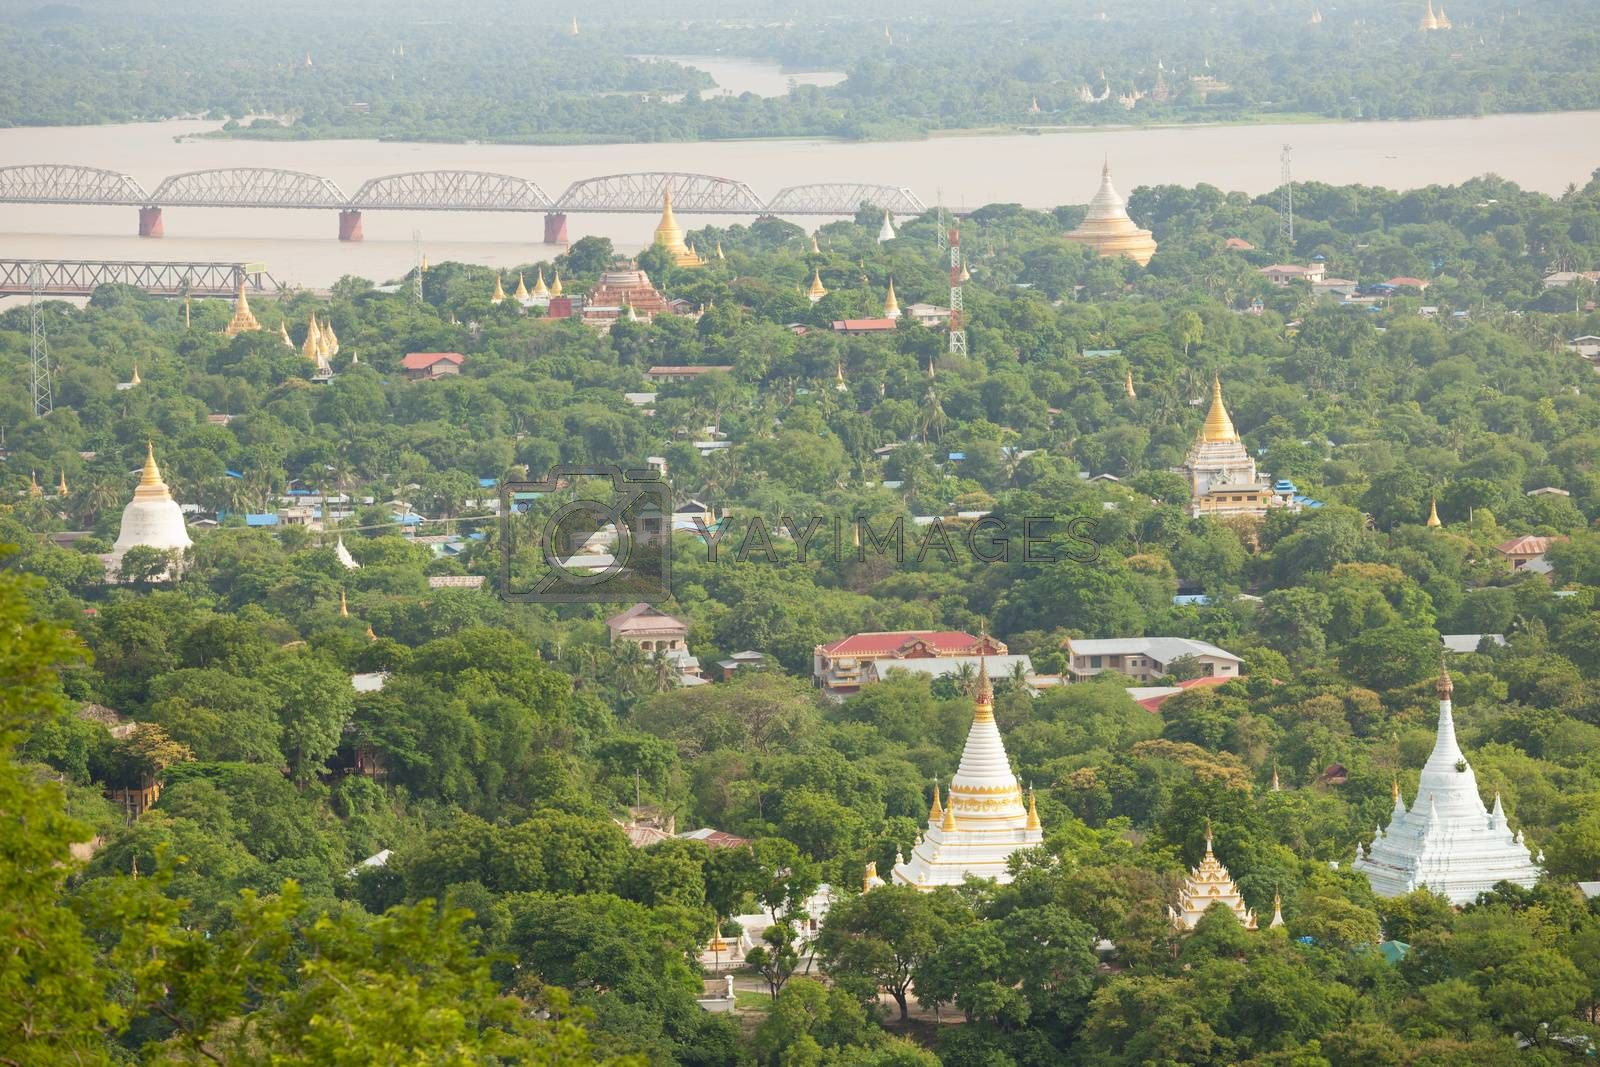 Ancient pagodas in Mandalay city, Myanmar